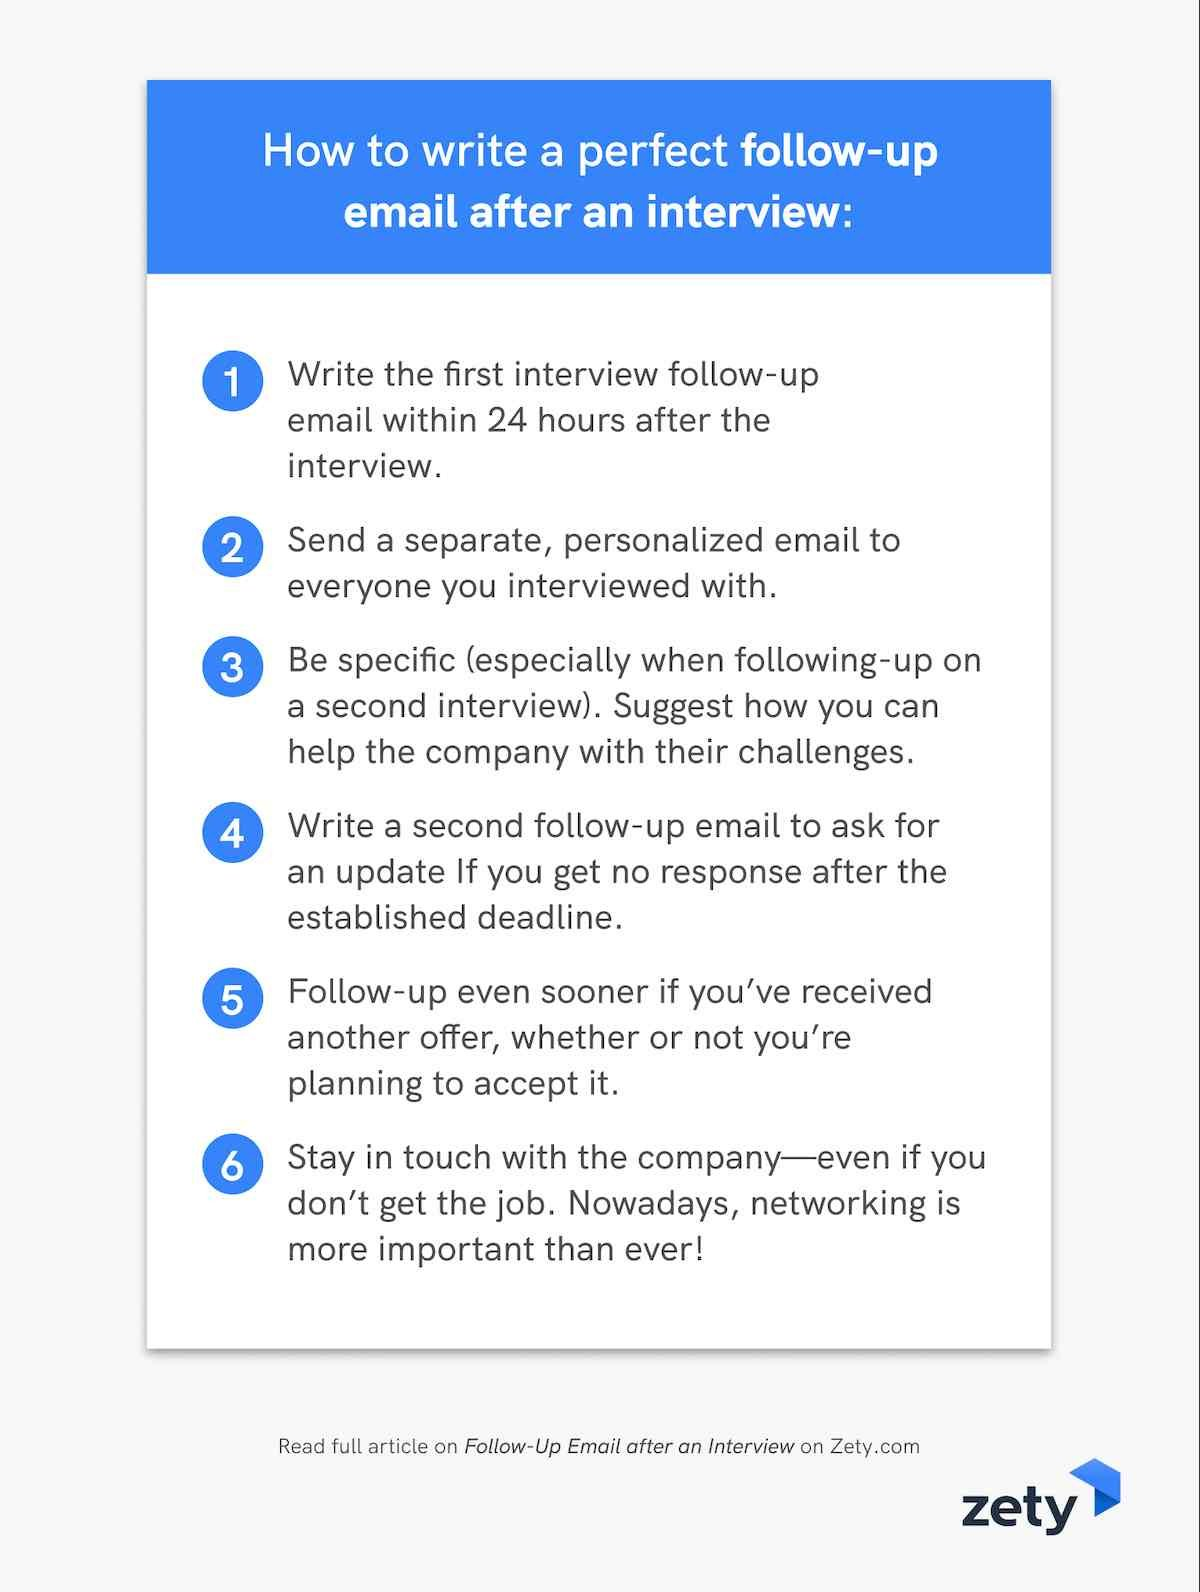 How to write a perfect follow-up email after an interview